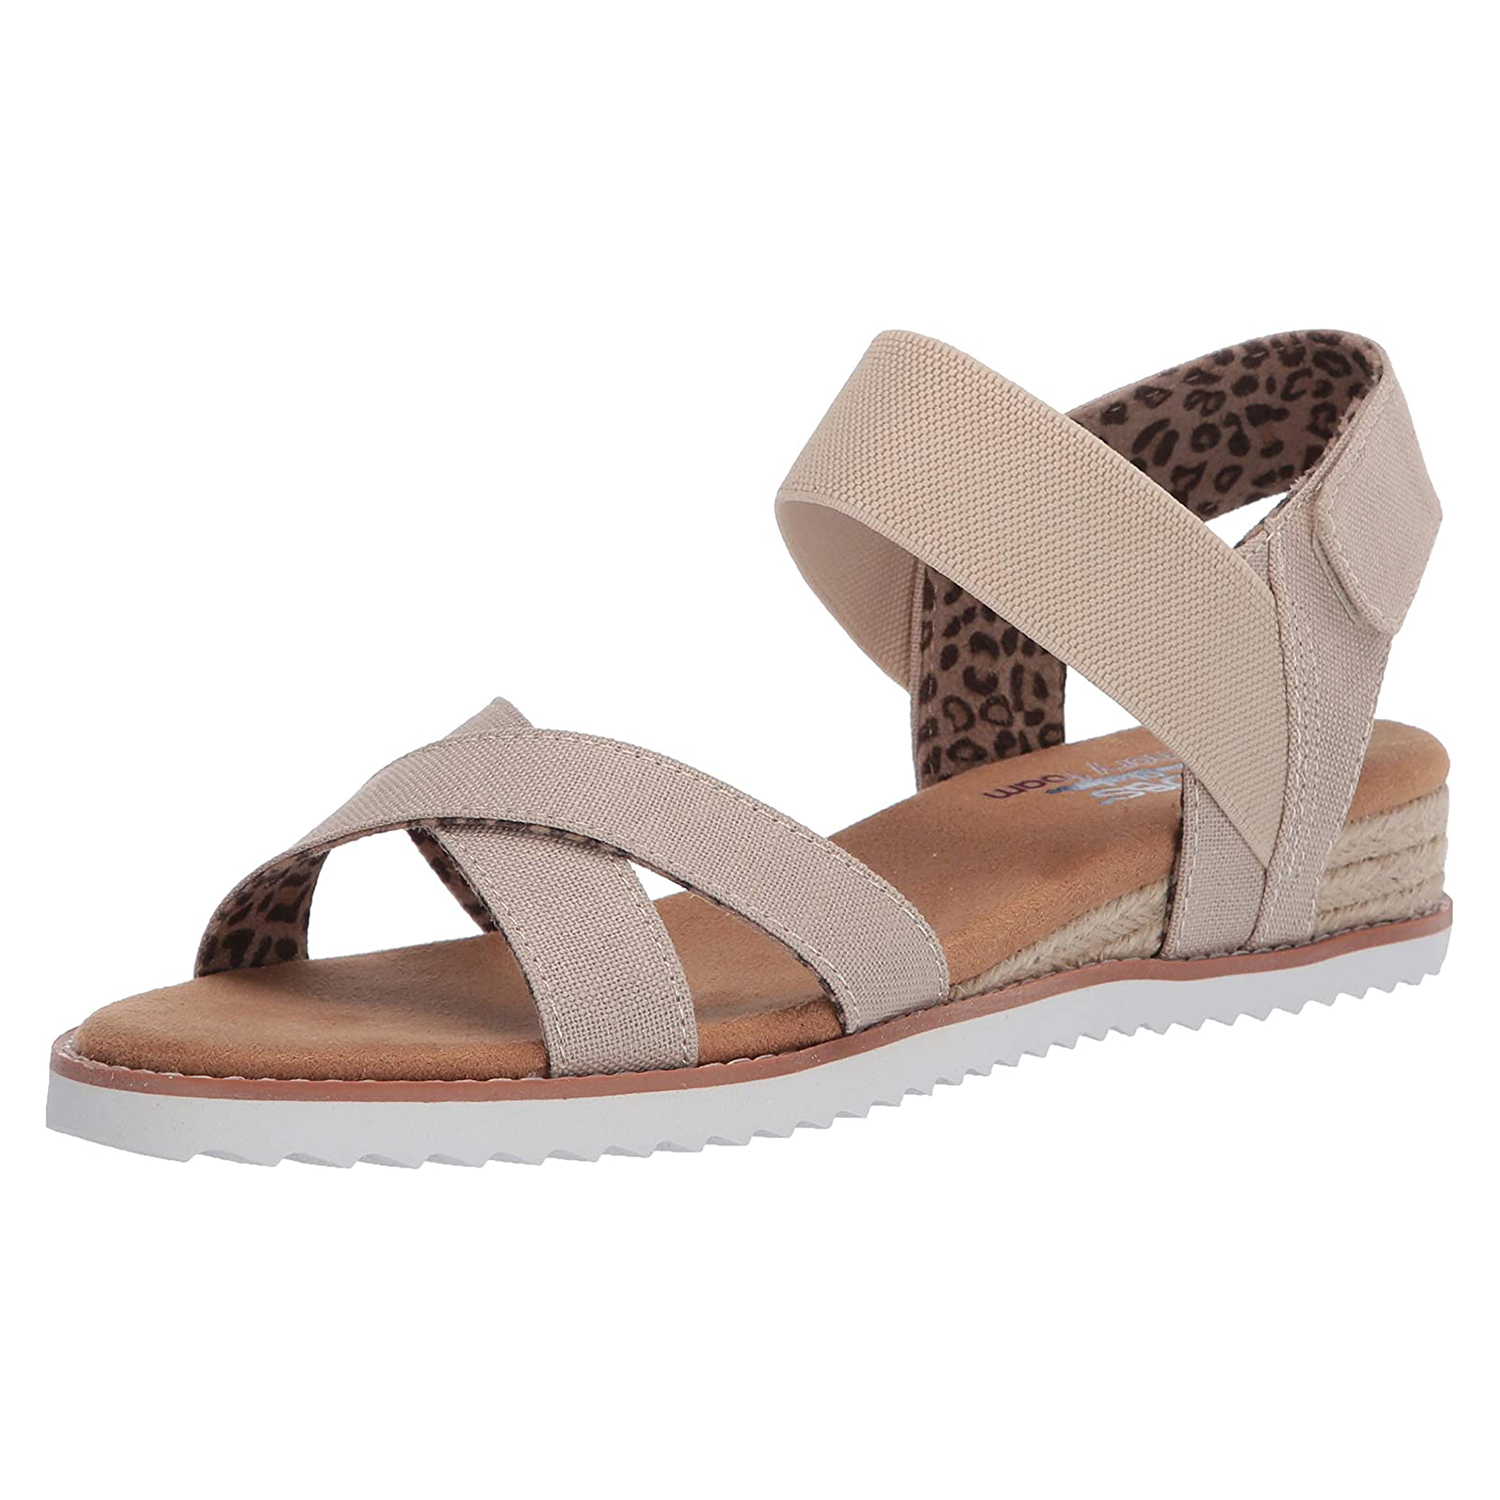 Skechers Desert Kiss-Secret Picnic Flat Sandals